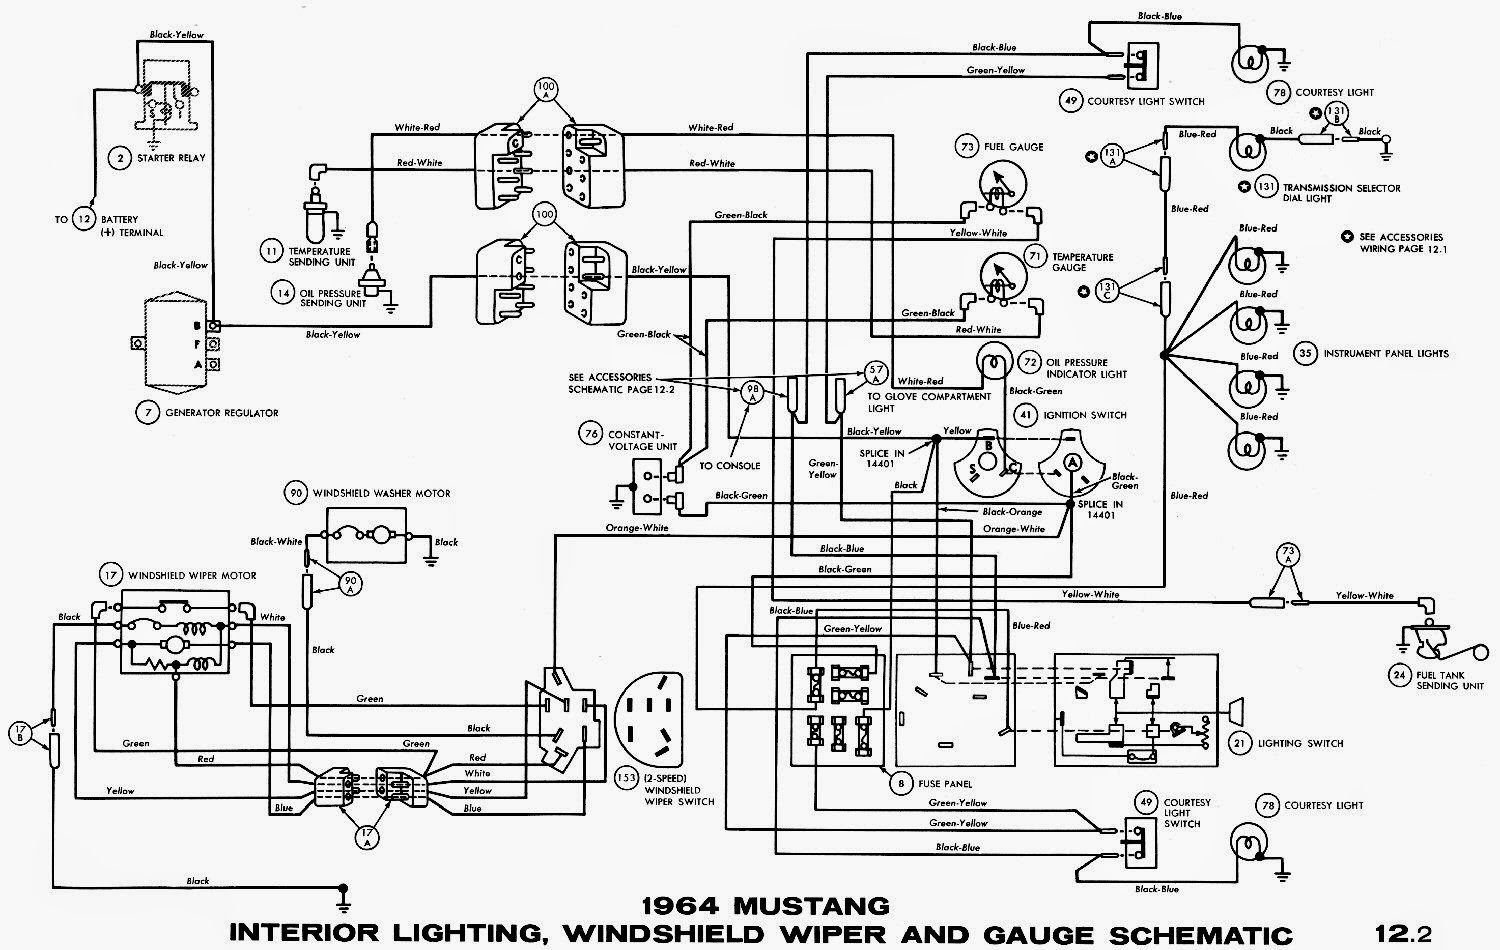 1964 Mustang Wiring Diagrams Schematic on windshield wiper motor wiring harness